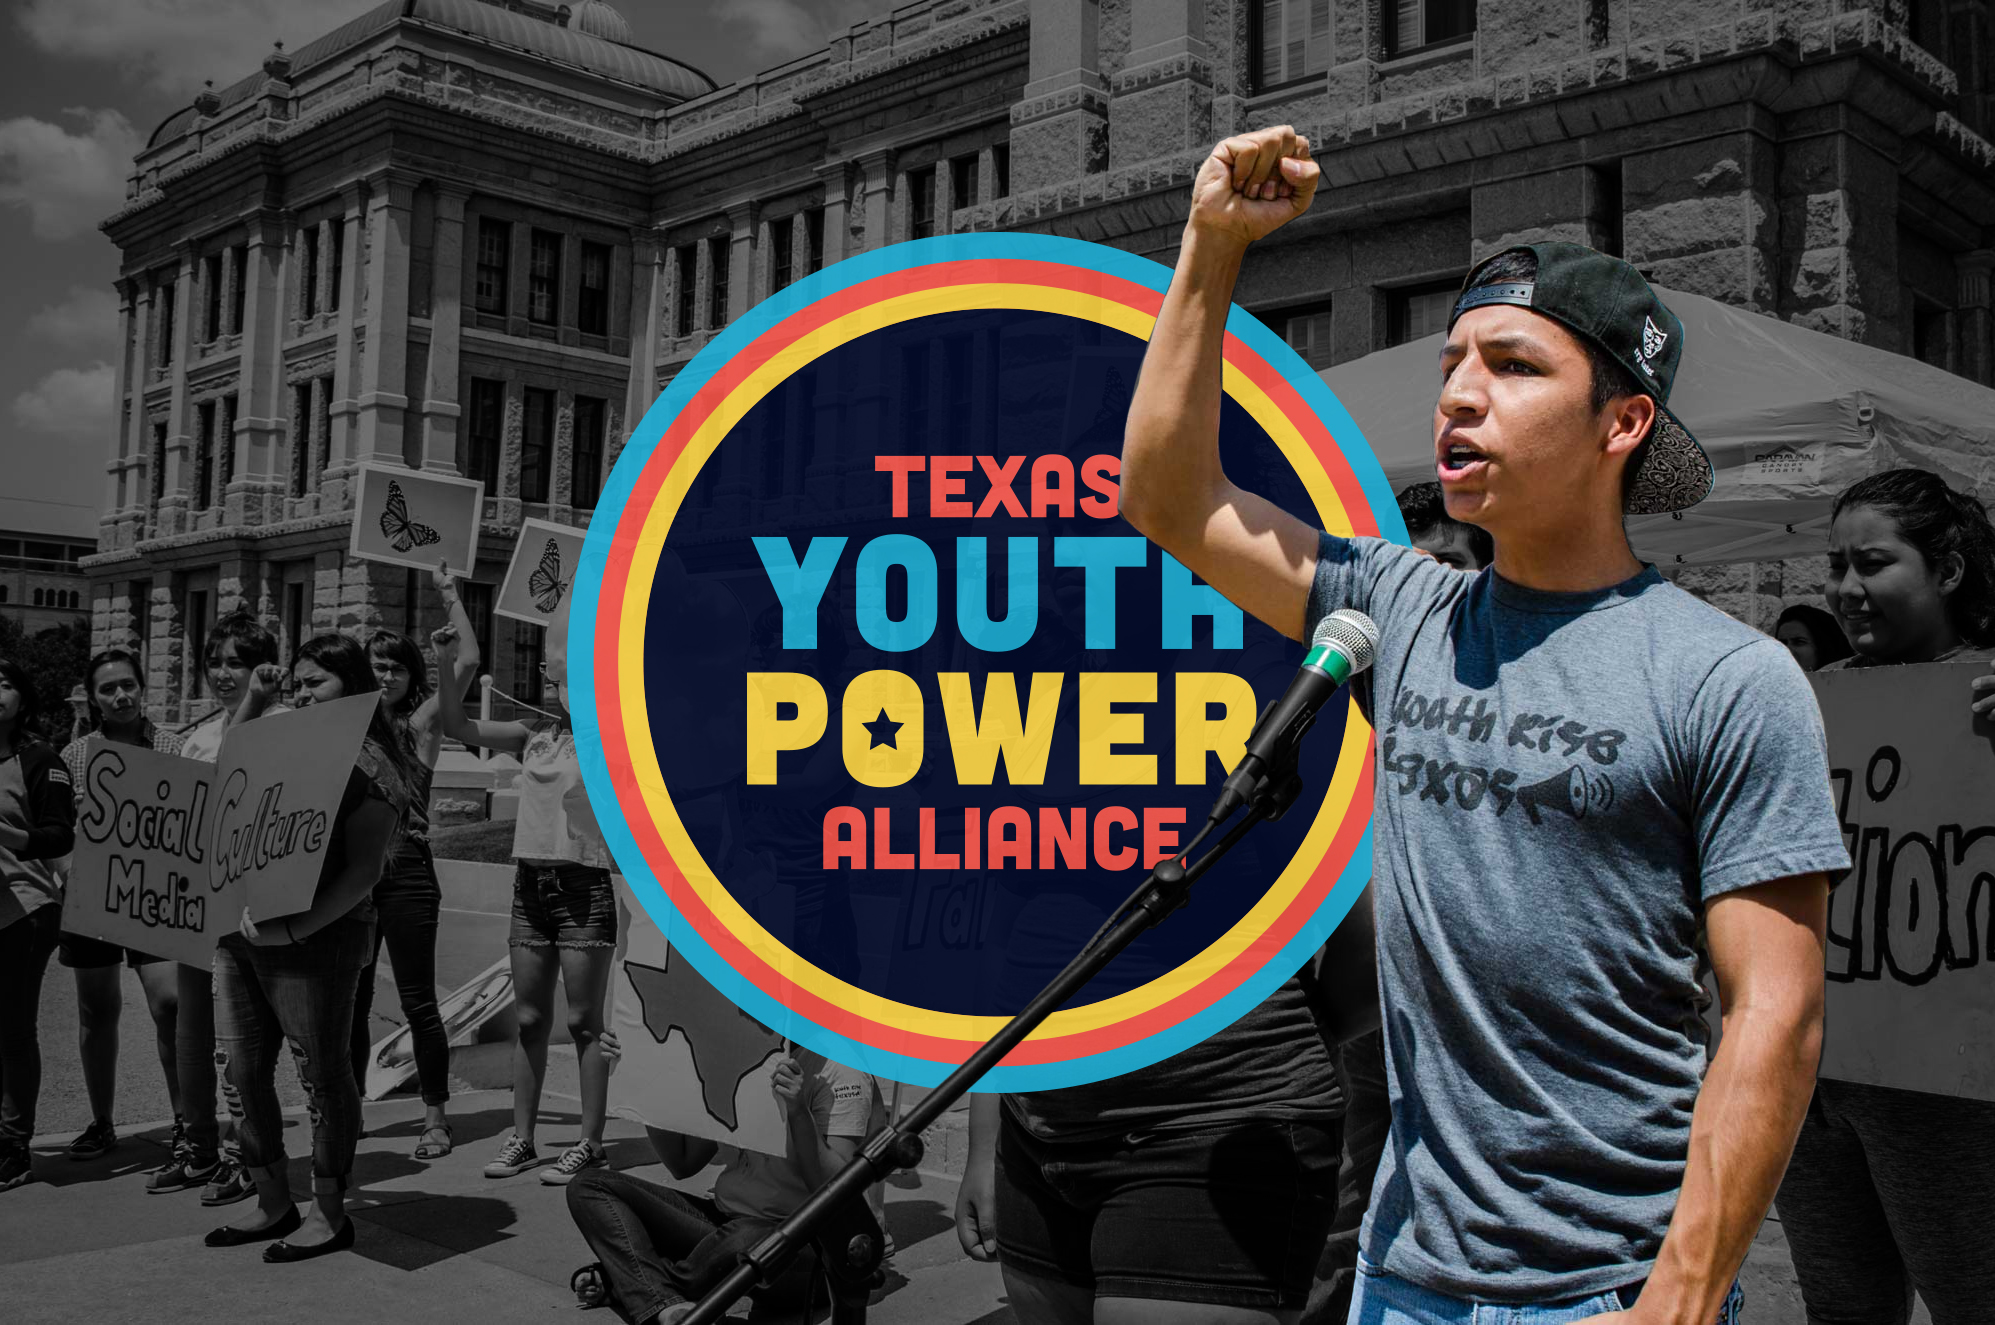 Teamed up with the Texas Freedom Network, Jolt Initiative and MOVE Texas to create the branding for the  Texas Youth Power Alliance  (TYPA), an organization that will harness the full power of young people to transform the state of Texas. The task at hand was to create an identity that was bright and bold to draw in young voters. Our deadline was tight and we had two weeks to craft a brand and landing page to promote the organization.  Designer: Yunuen Sigler  Photography Credit: Texas Youth Power Alliance